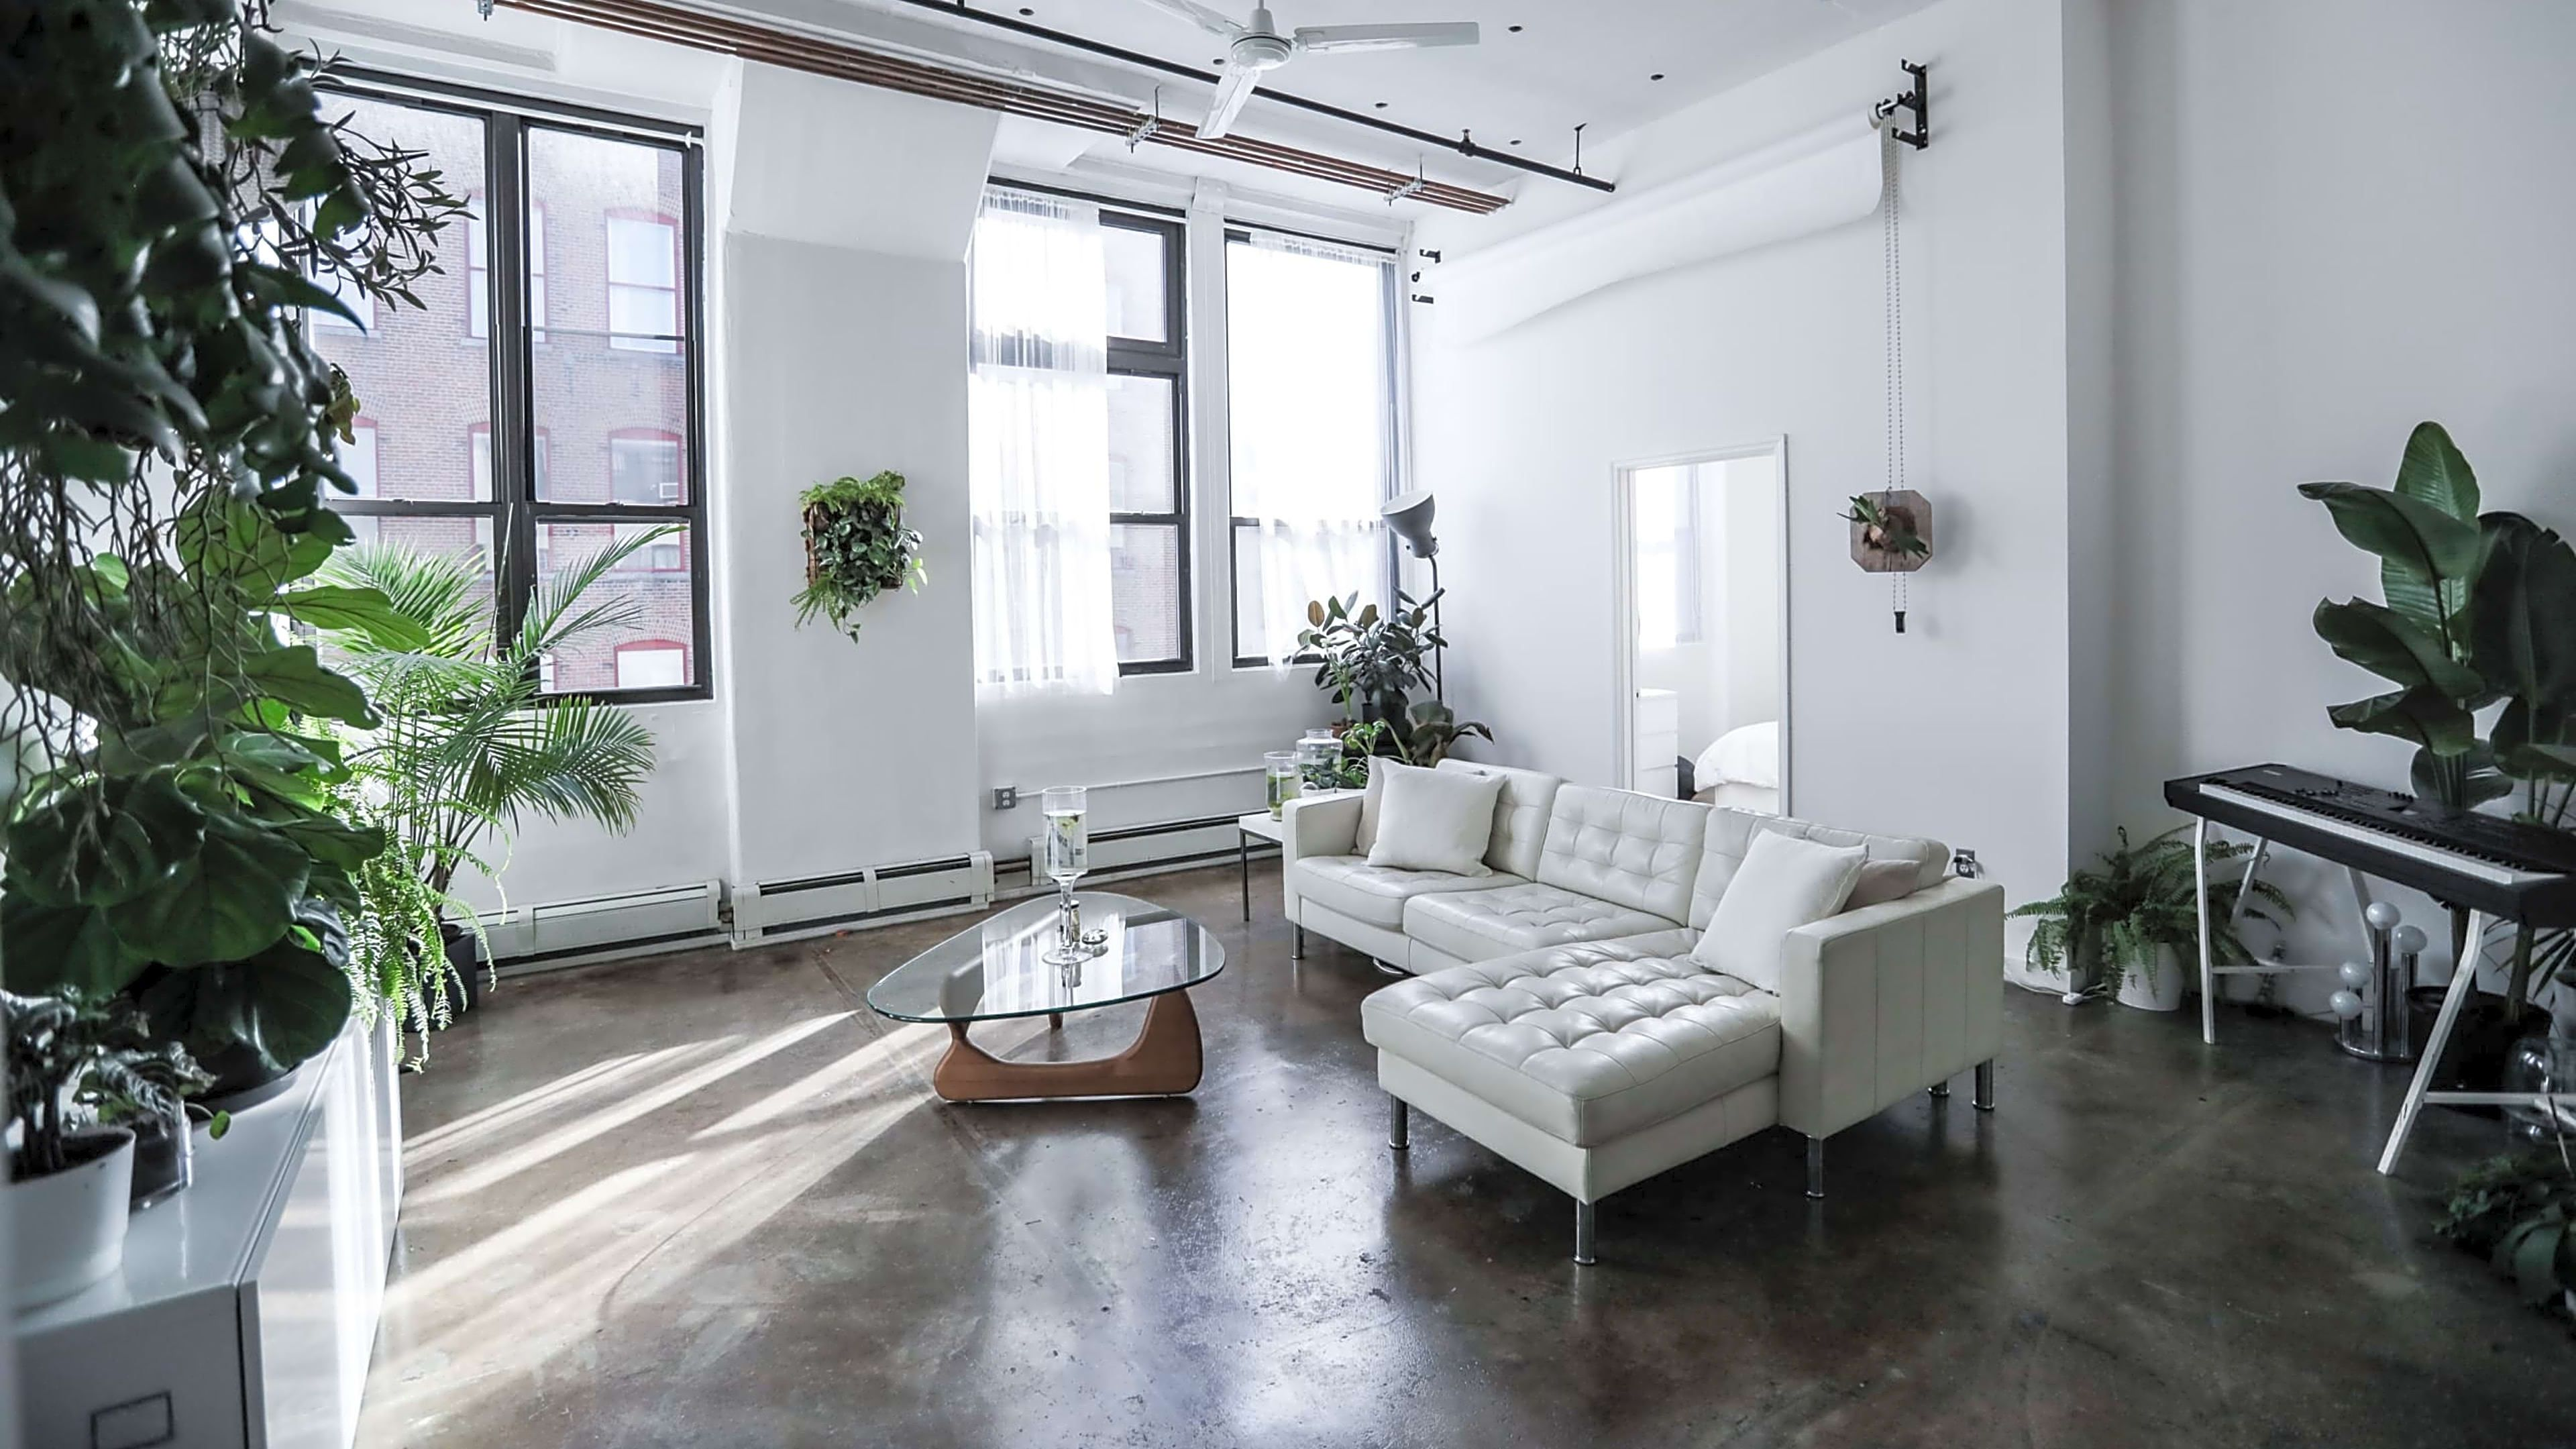 1000 Sq Ft Minimal Loft 12ft Ceilings Event Space Williamsburg New York Corporate And Social Venues Living Room Console Loft Spaces Rental Furniture